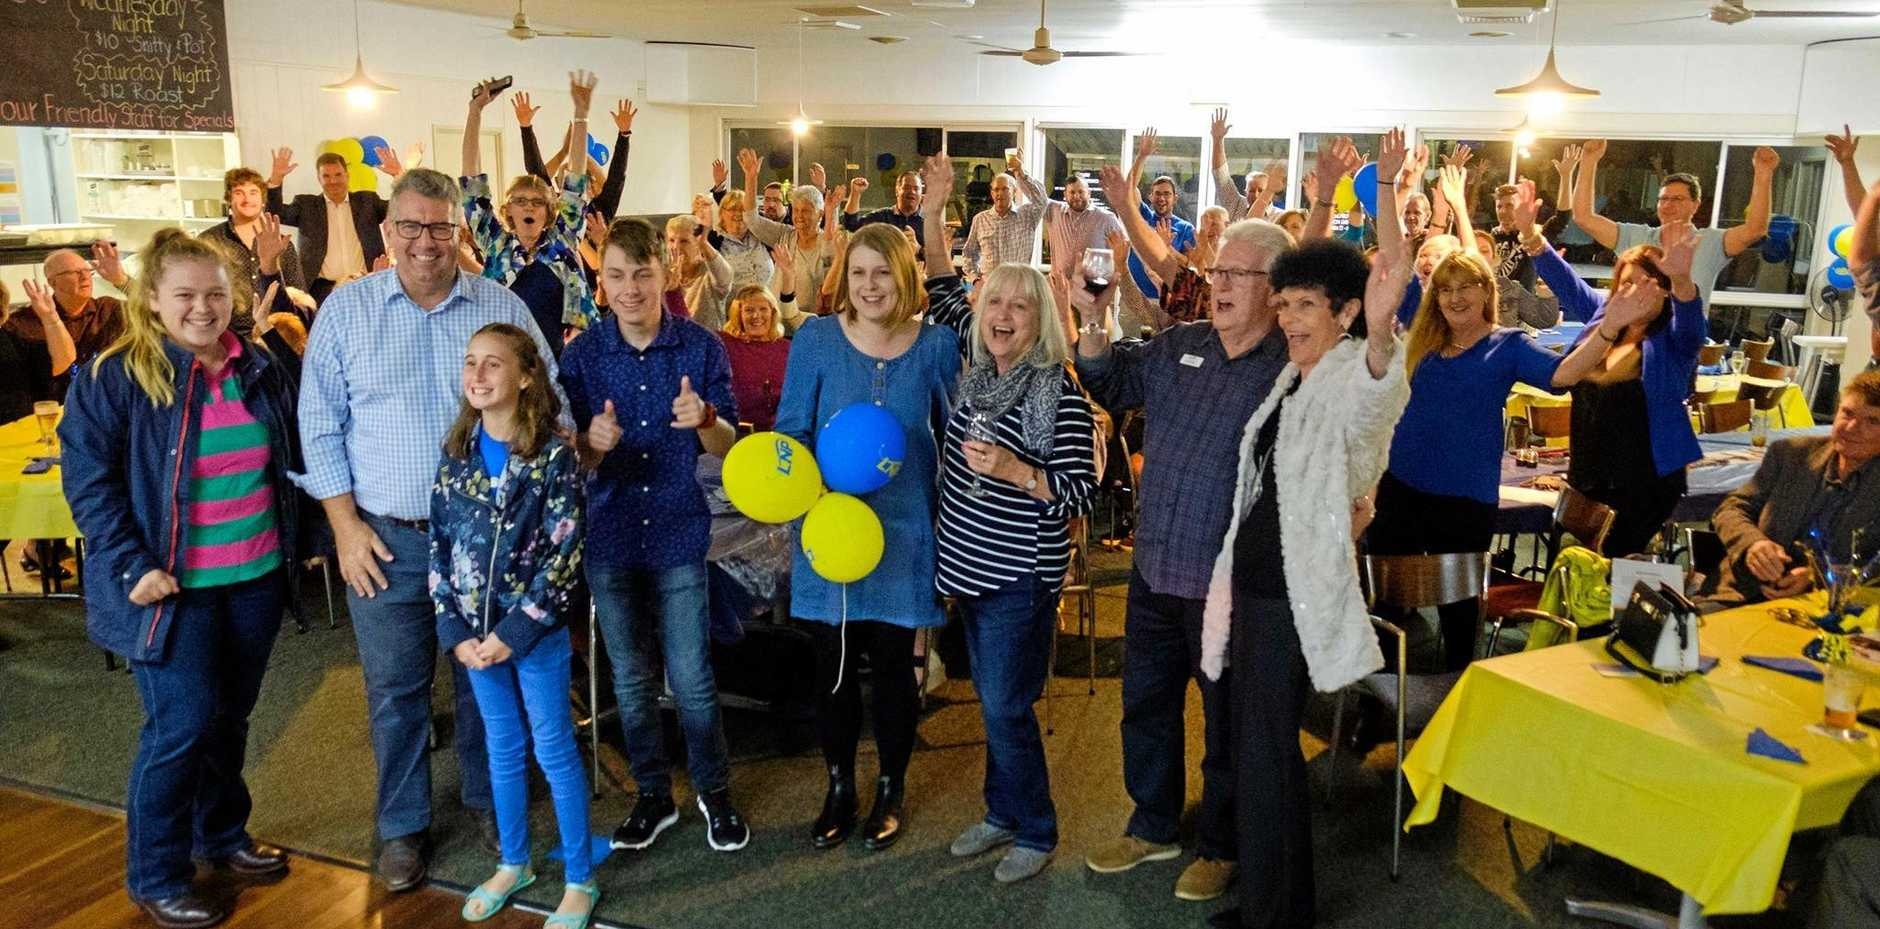 JUBILANT: Keith Pitt celebrates with family and supporters at the Burnett Bowls Club on Saturday. Mr Pitt received about a 6 per cent swing towards him, according to the AEC count.